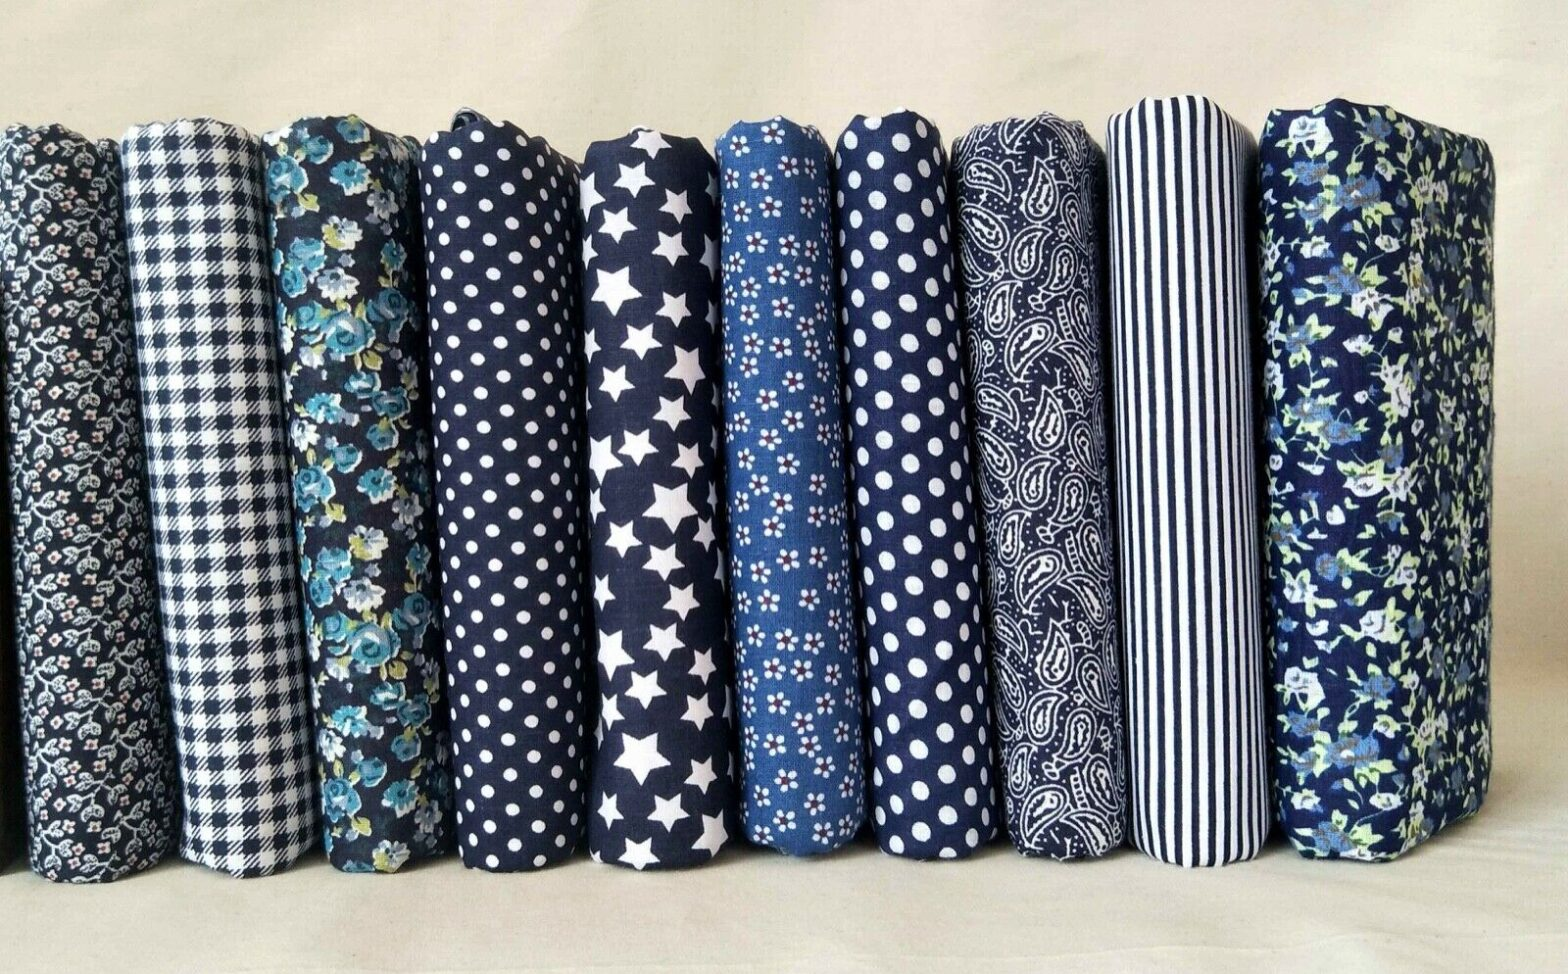 How Many Fat Quarters In a Yard Of Fabric?